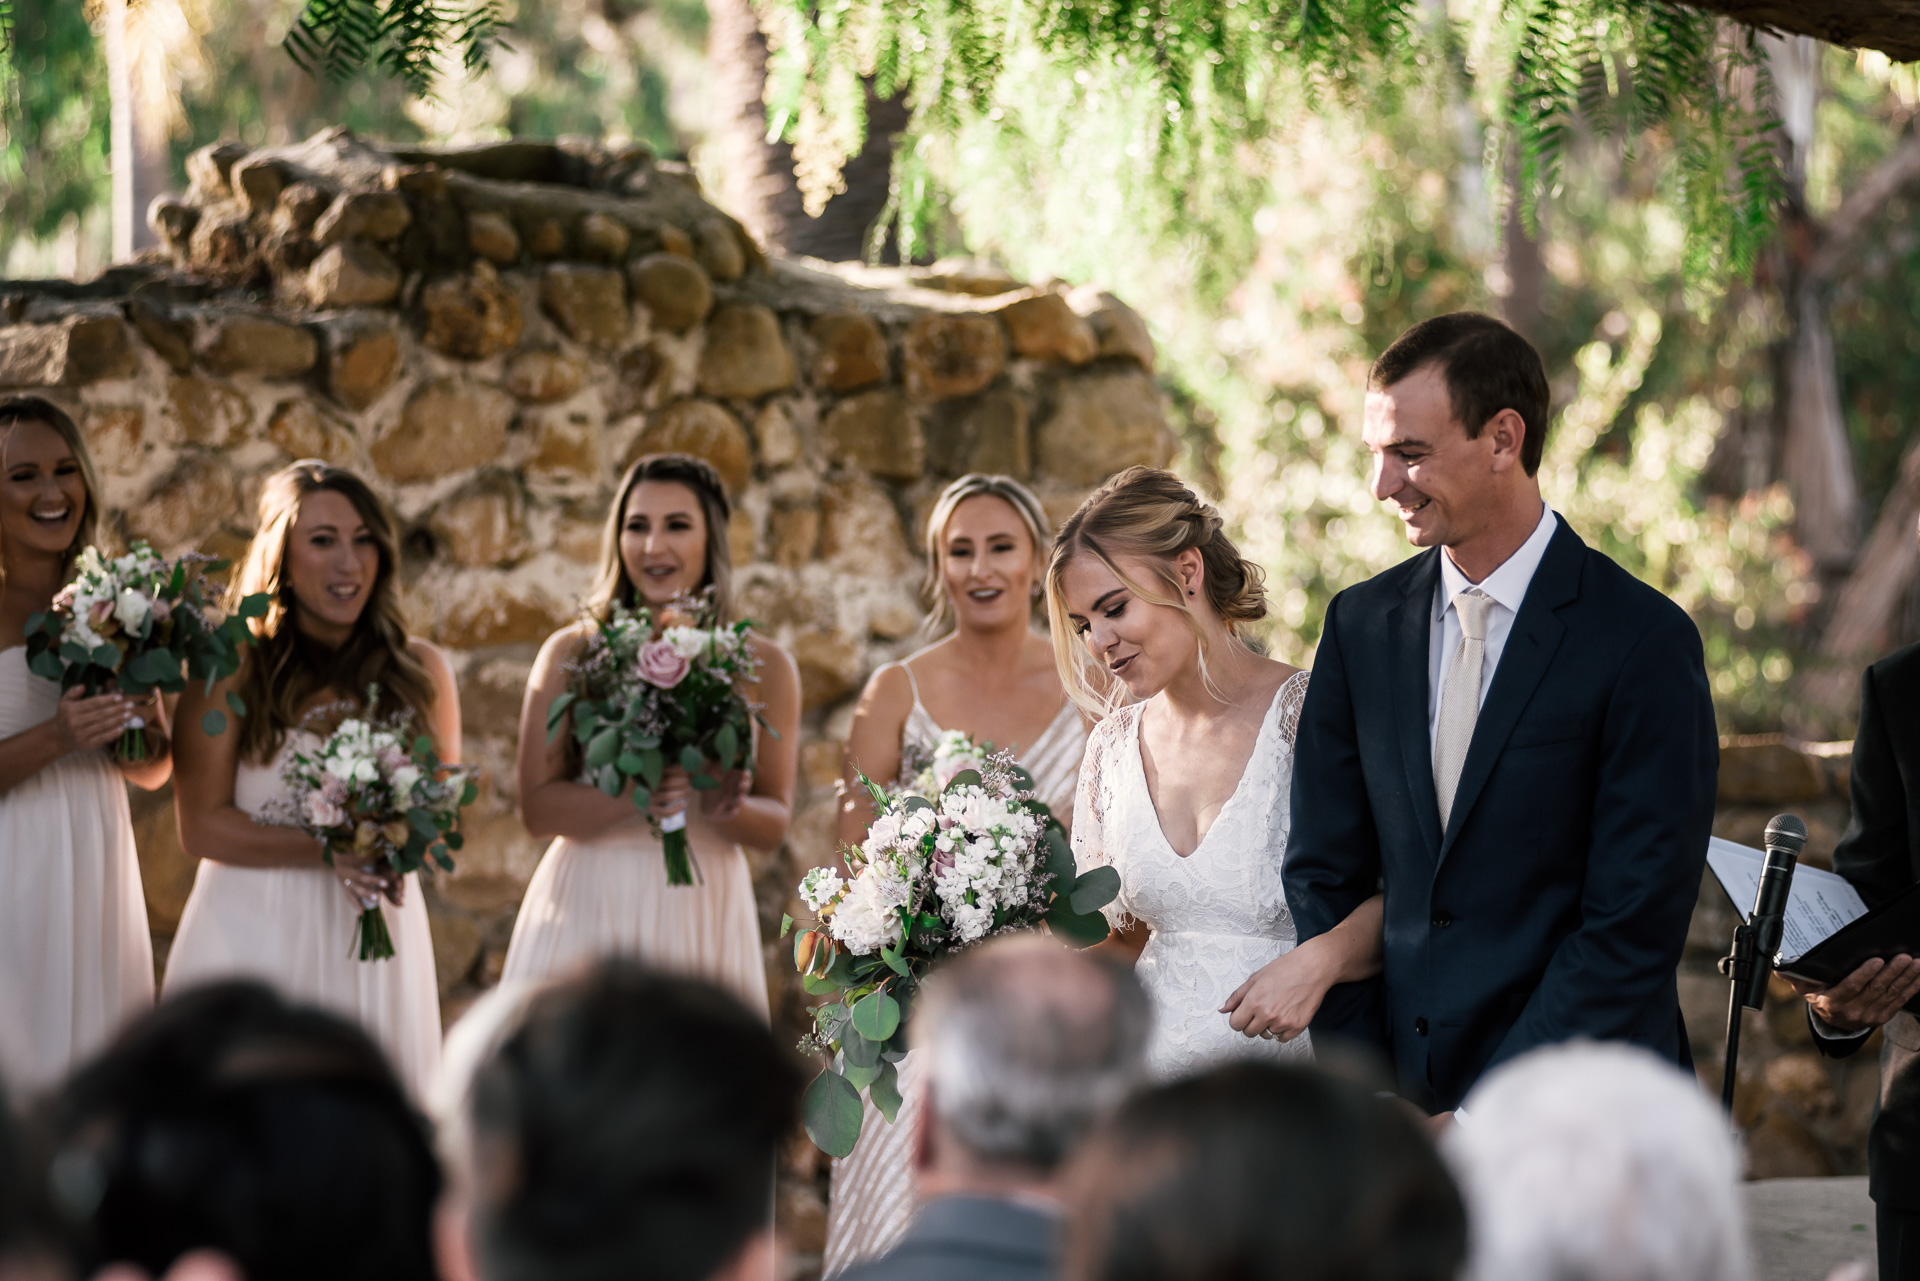 for the first time as man and wife captured by photographer during romantic wedding at the historic Leo Carrillo Ranch in Carlsbad California